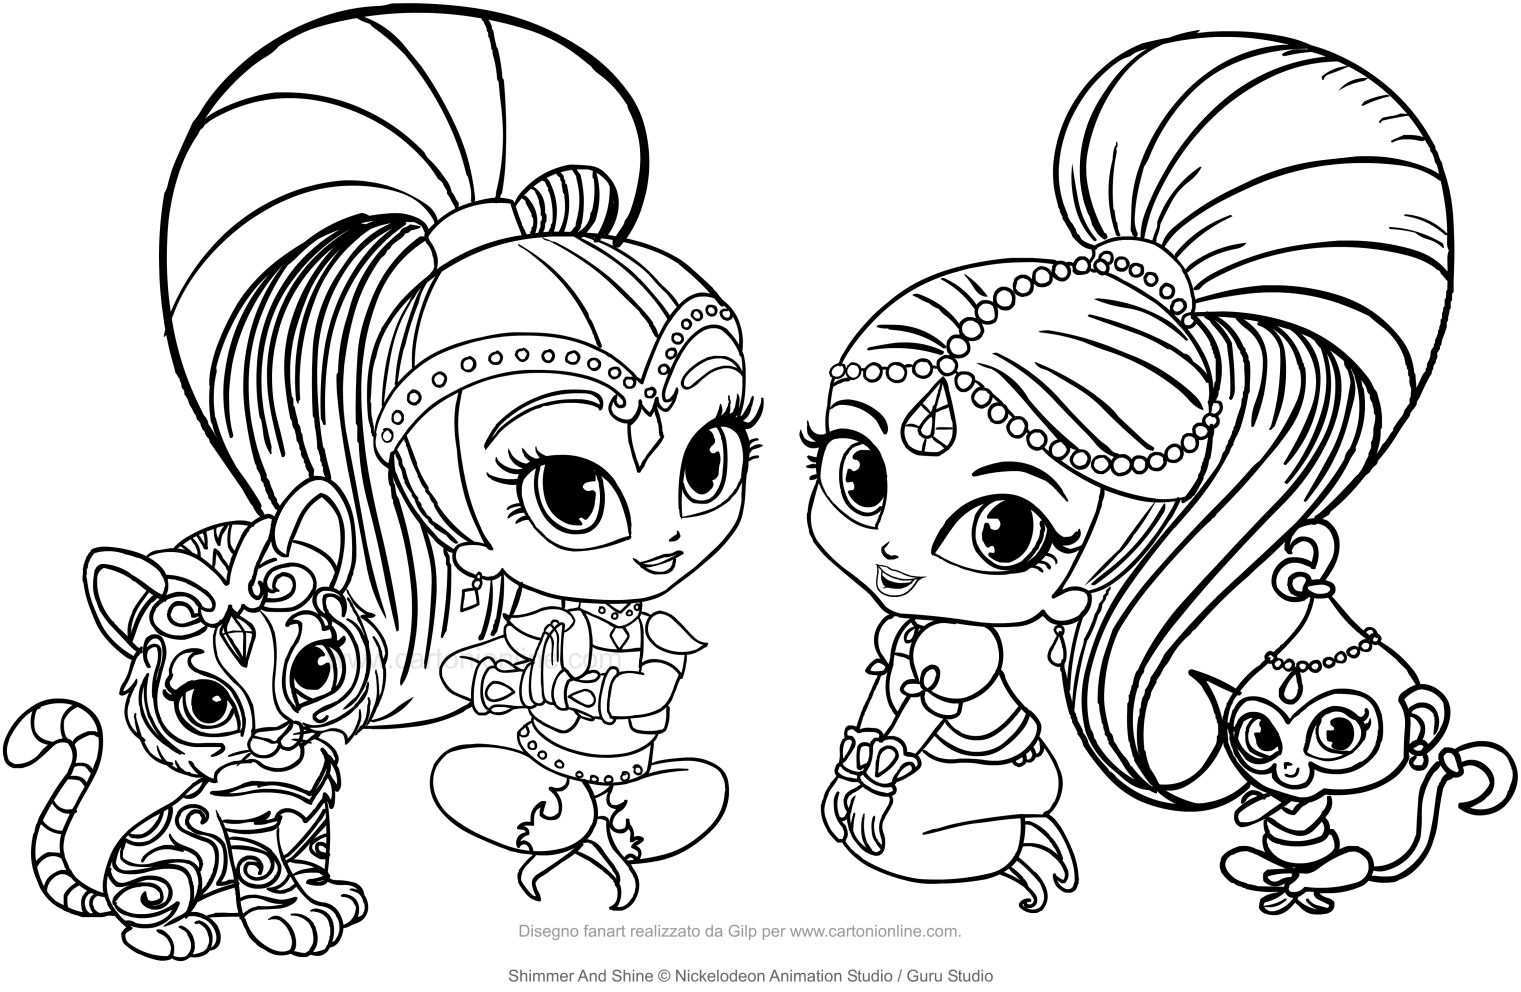 Pin By Esther Van Den Boogaart On Coloring Pages Animal Coloring Pages Nick Jr Coloring Pages Free Coloring Pages